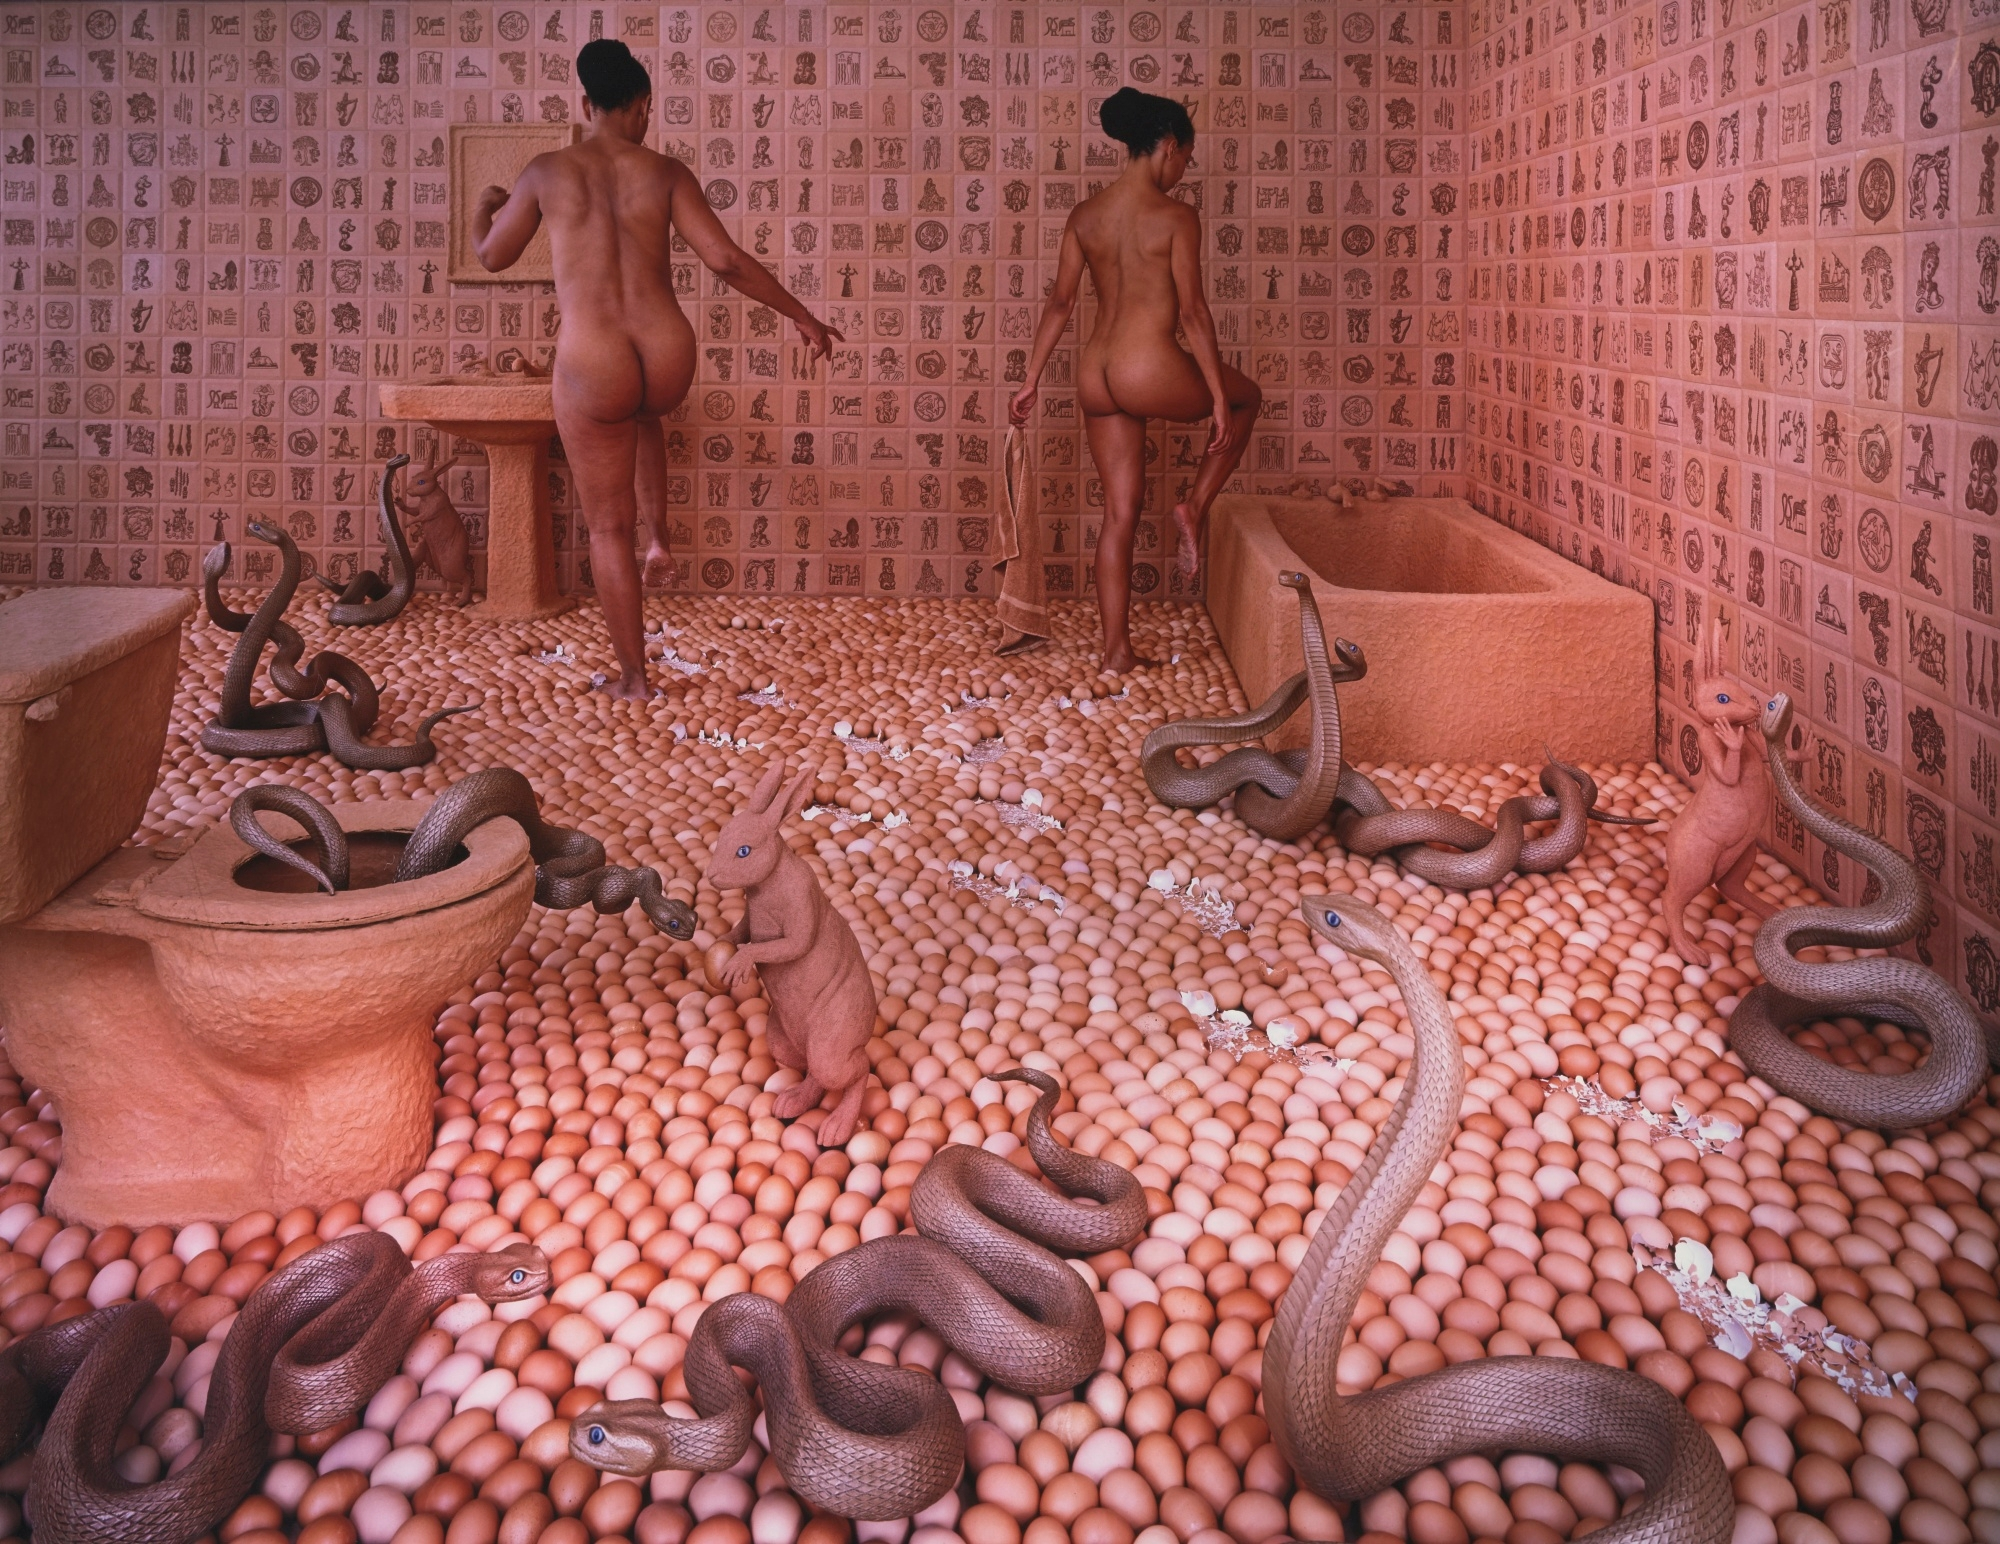 Sandy Skoglund, WALKING EGGSHEL - son | ello